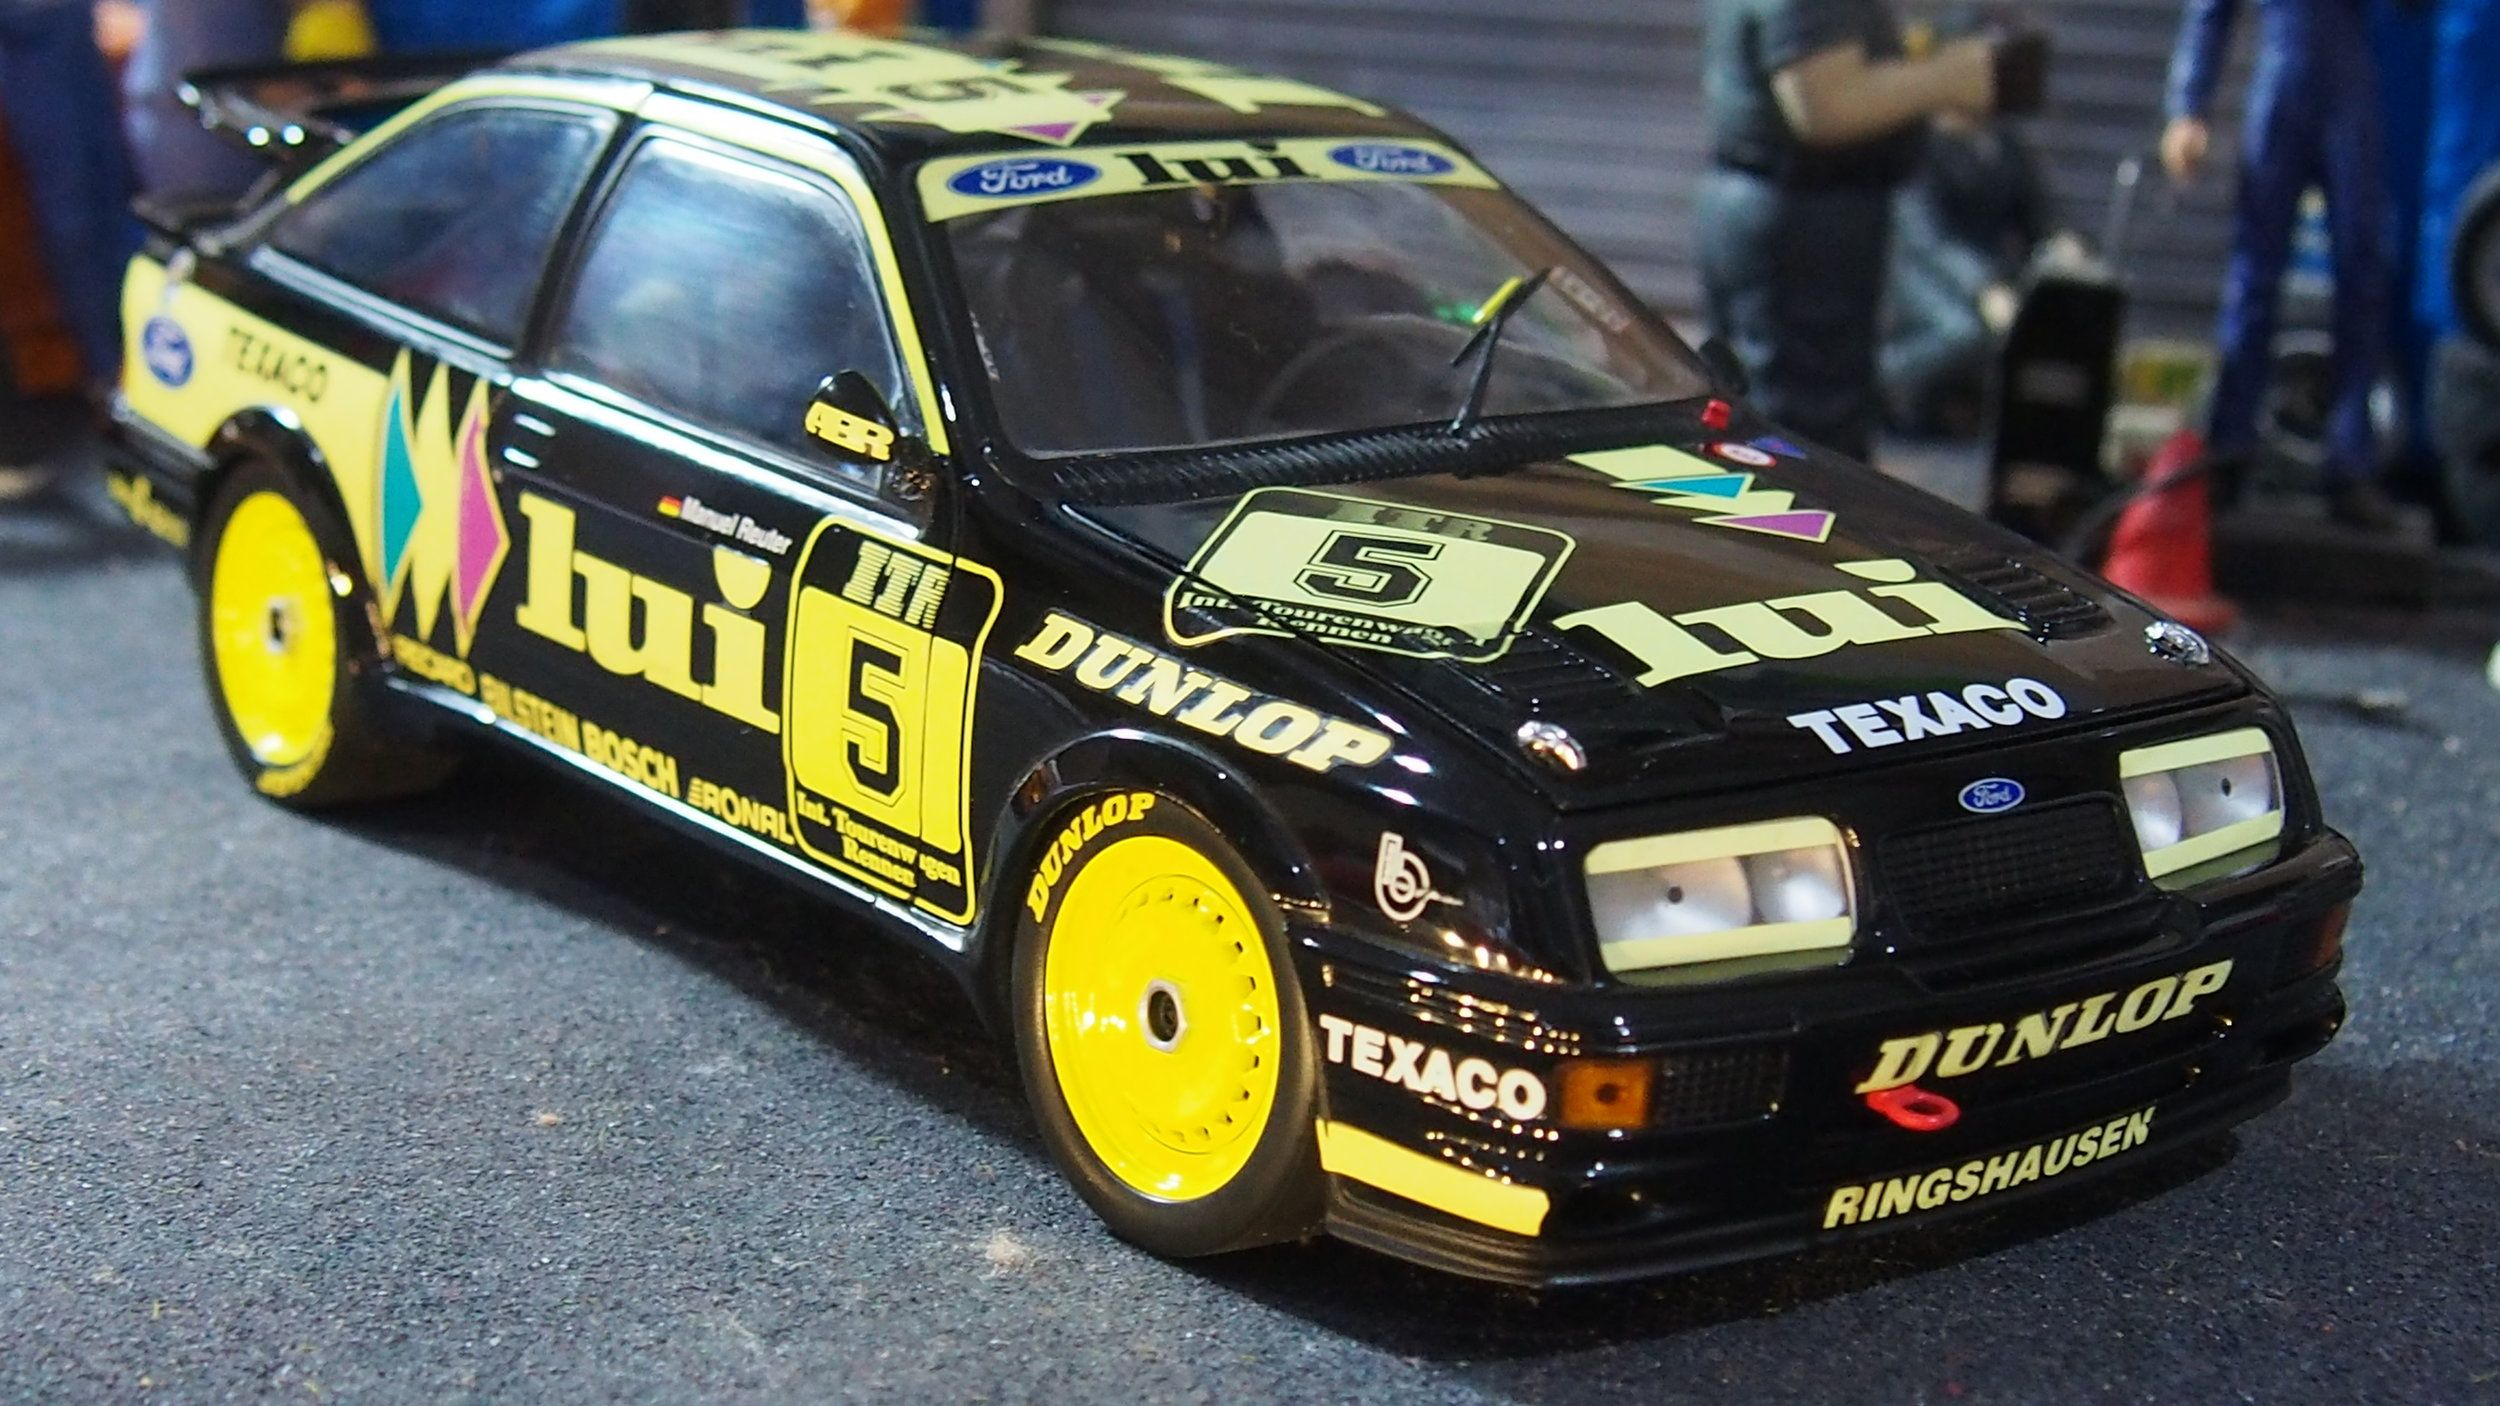 Ford sierra RS500 cosworth DTM 1:18 scale by minichamps